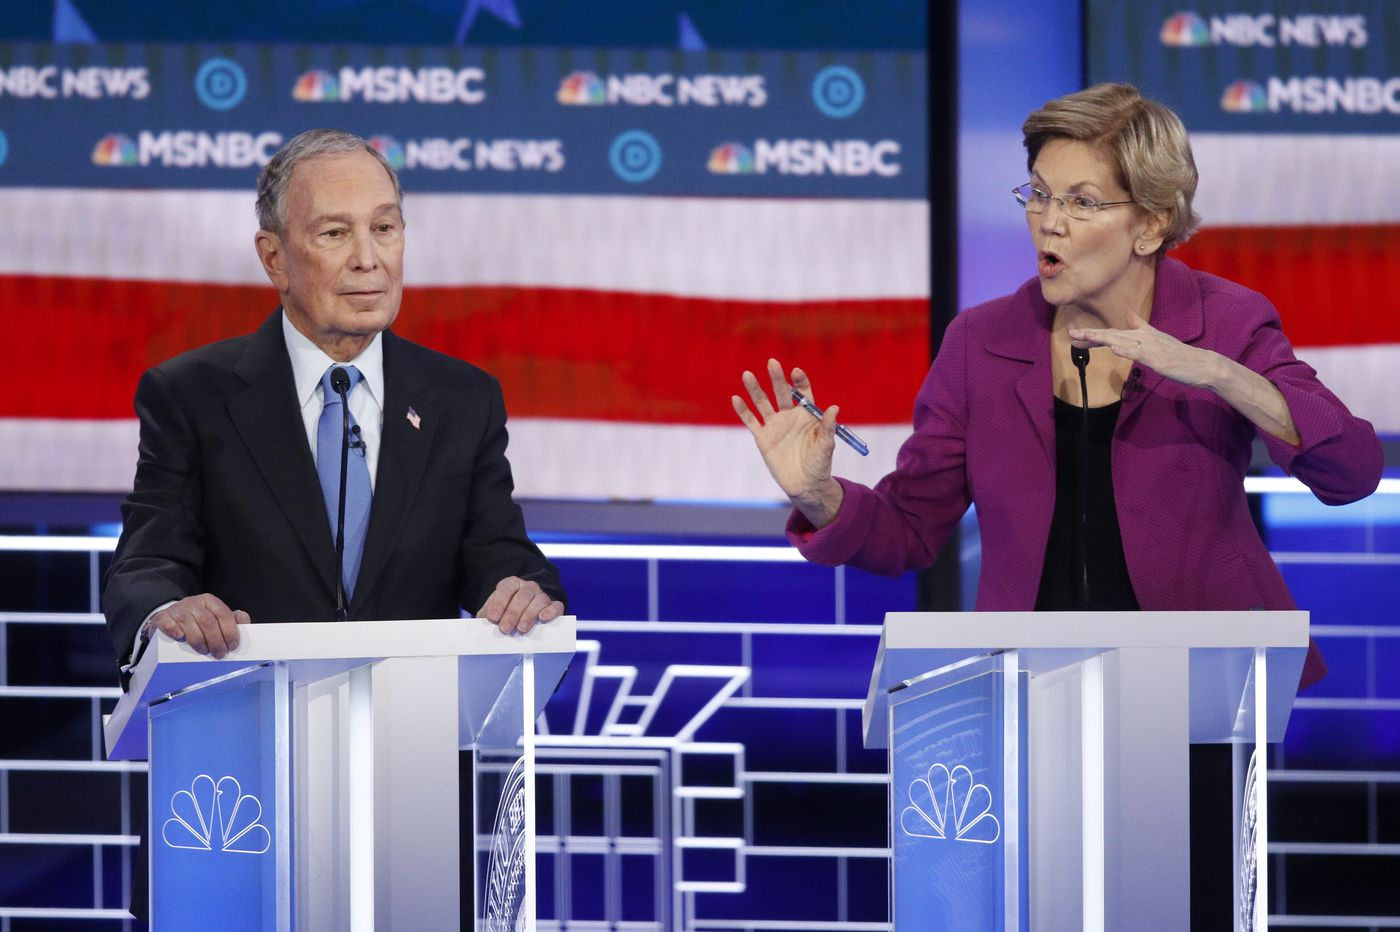 Elizabeth Warren wasn't playing around at the Democratic debate. A lawyer from the Philly suburbs has seen it before.